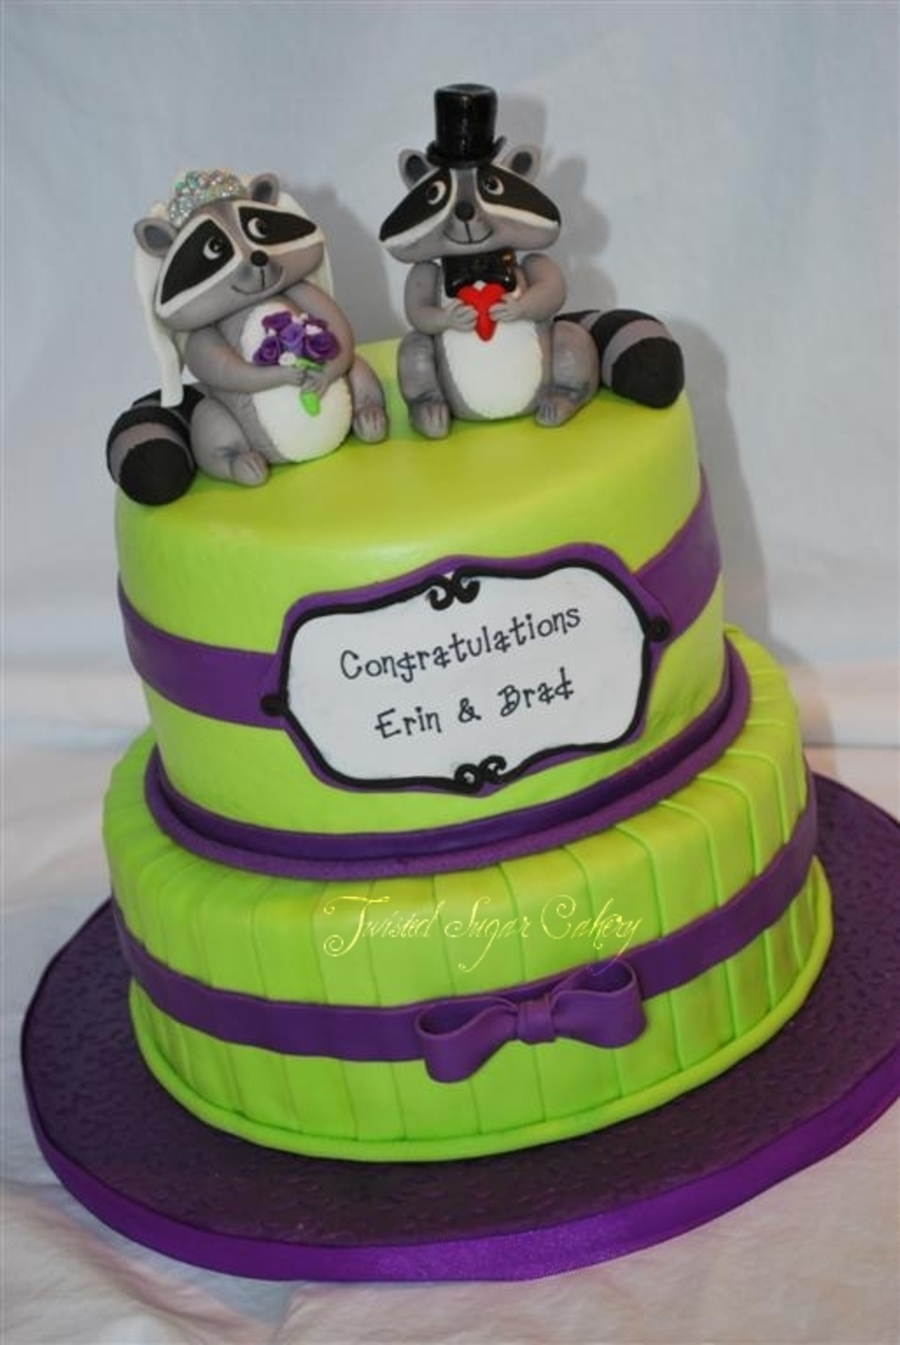 Raccoon Bride And Groom For A Co Ed Bridal Shower Cake on Cake Central